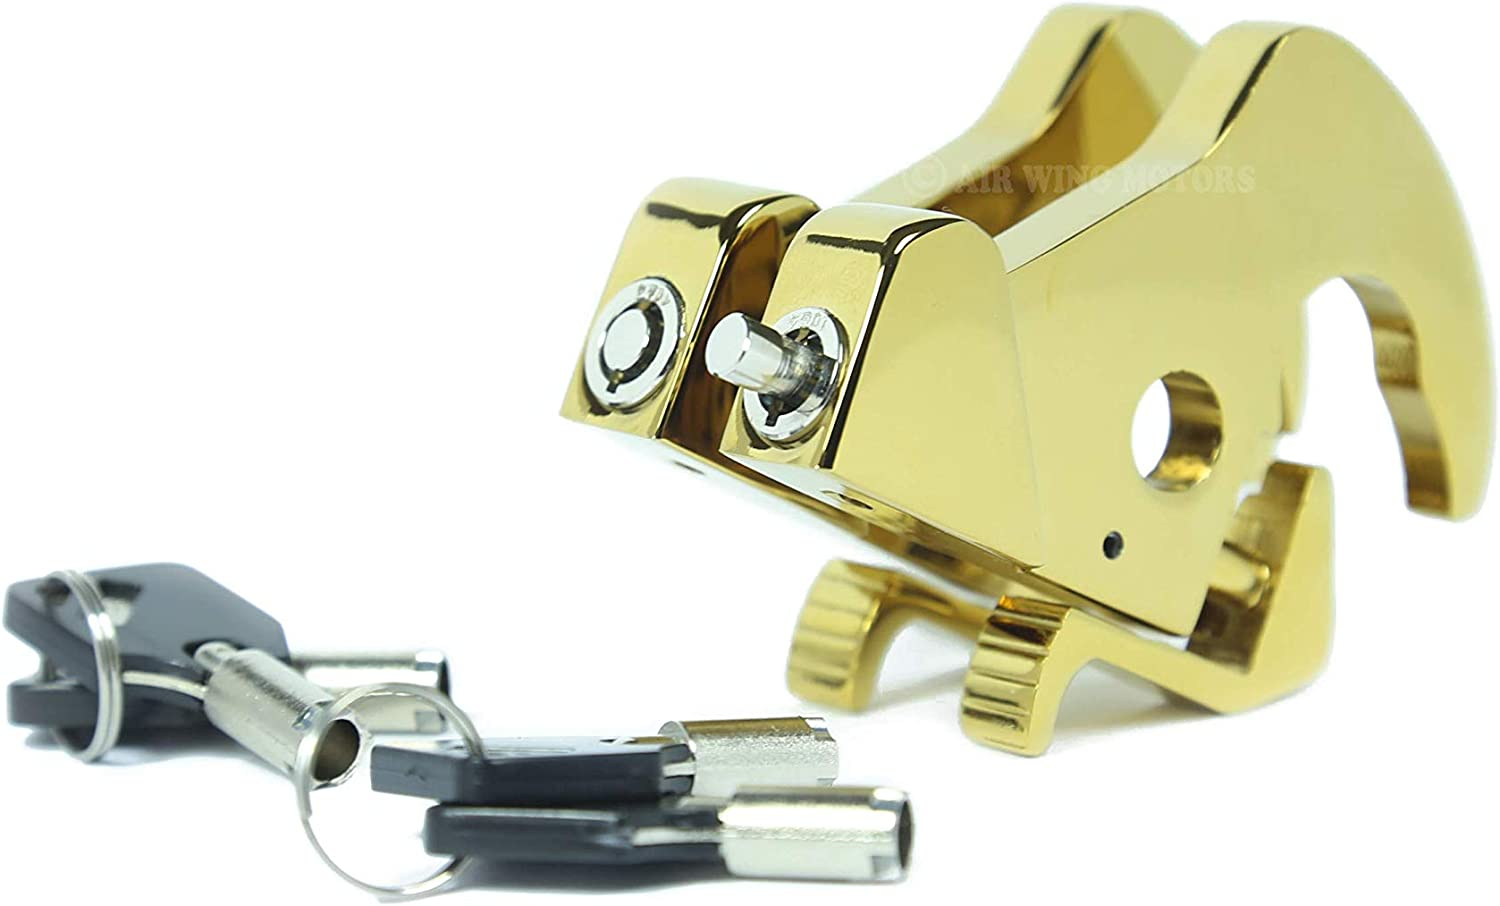 Rotary Docking Latches with Locks for Harley Davidson Sissy Bar Uprights and Luggage Racks AIR WING MATERIALS